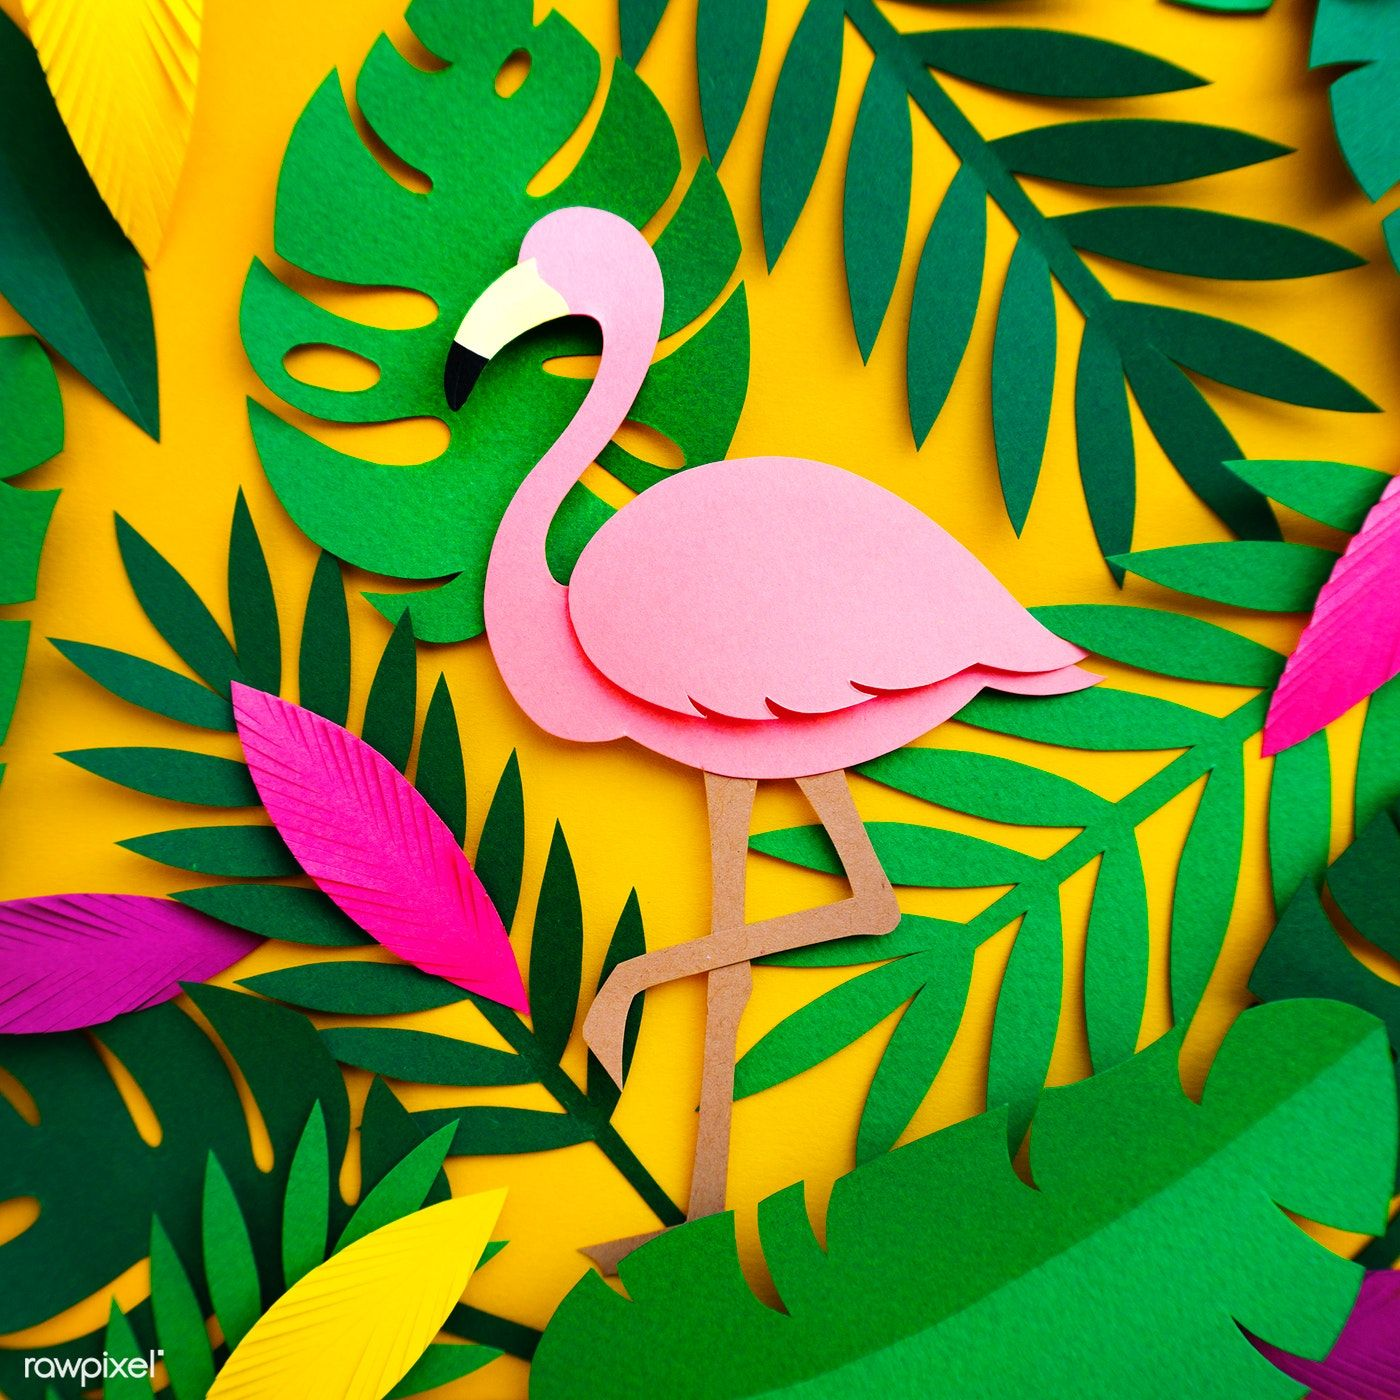 Photo of Download premium image of Flamingo Nature Papercraft Leaves Plants 261647